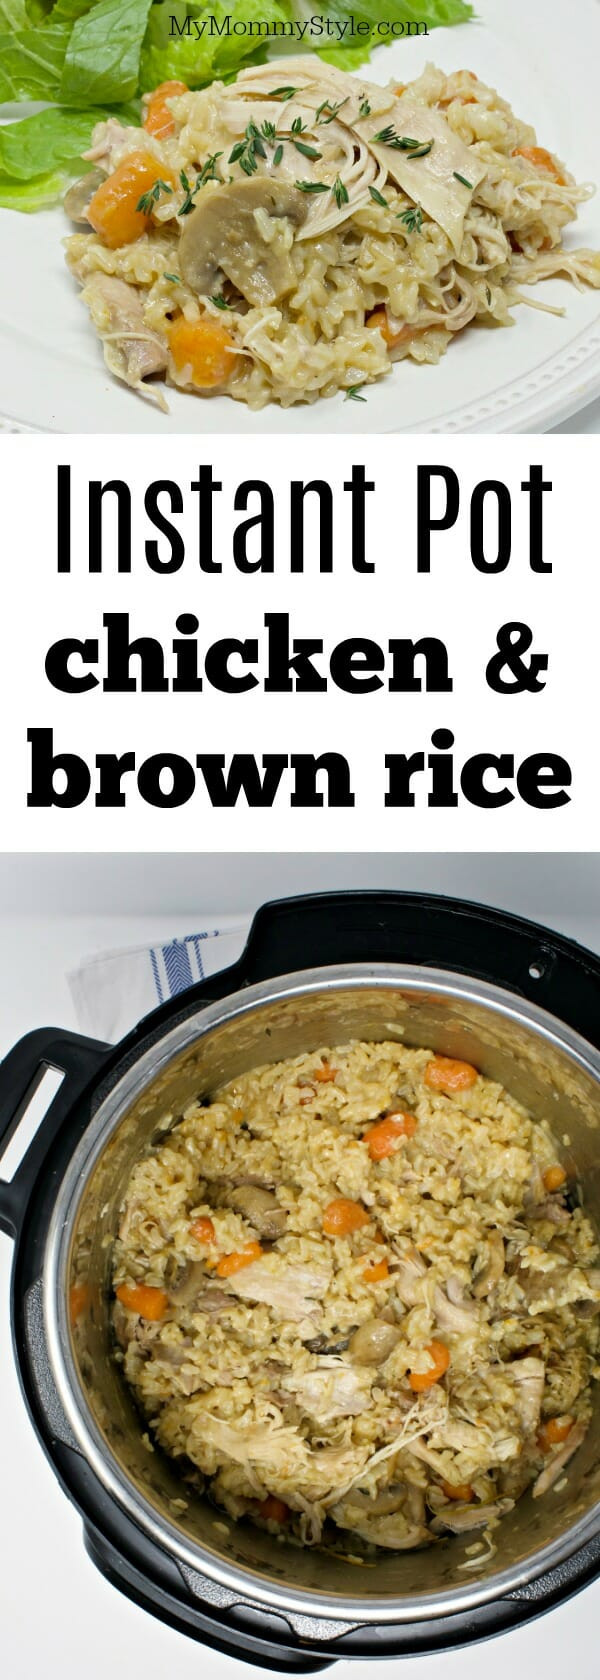 Instant Pot Chicken And Brown Rice  Instant pot chicken and rice My Mommy Style